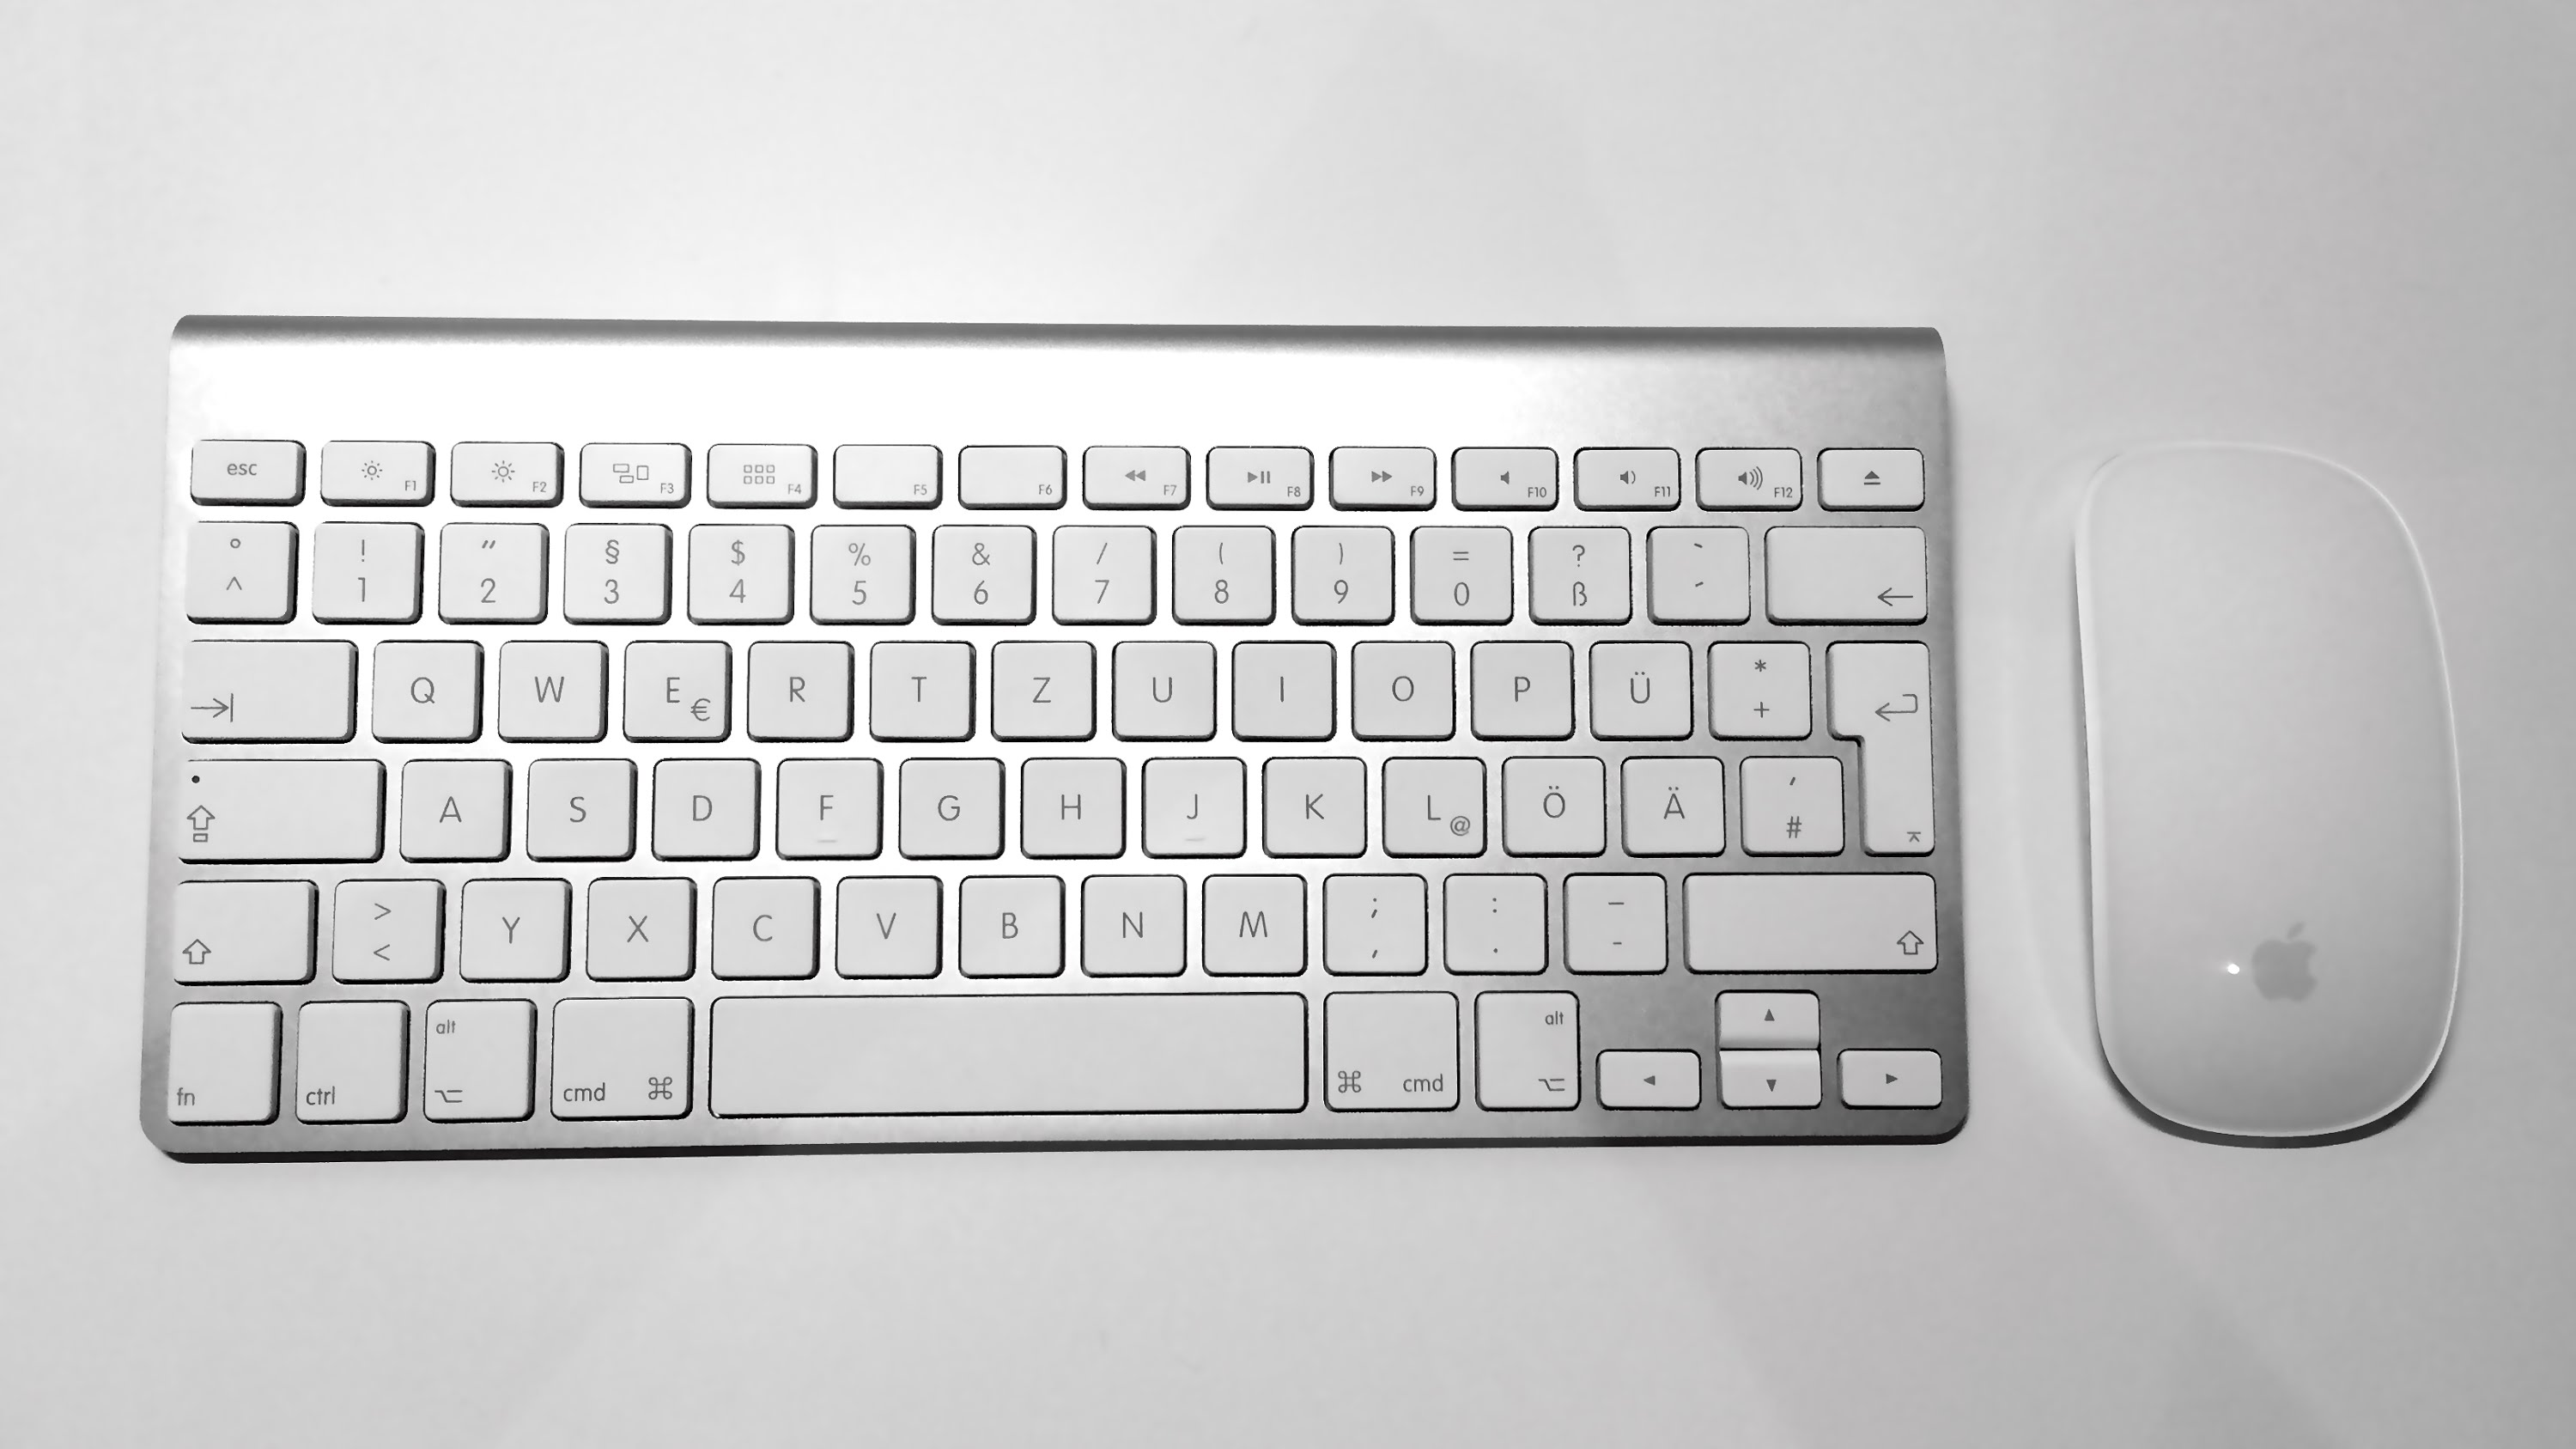 a3e2ea22842 New Apple mouse, keyboard incoming with Bluetooth LE | GearOpen